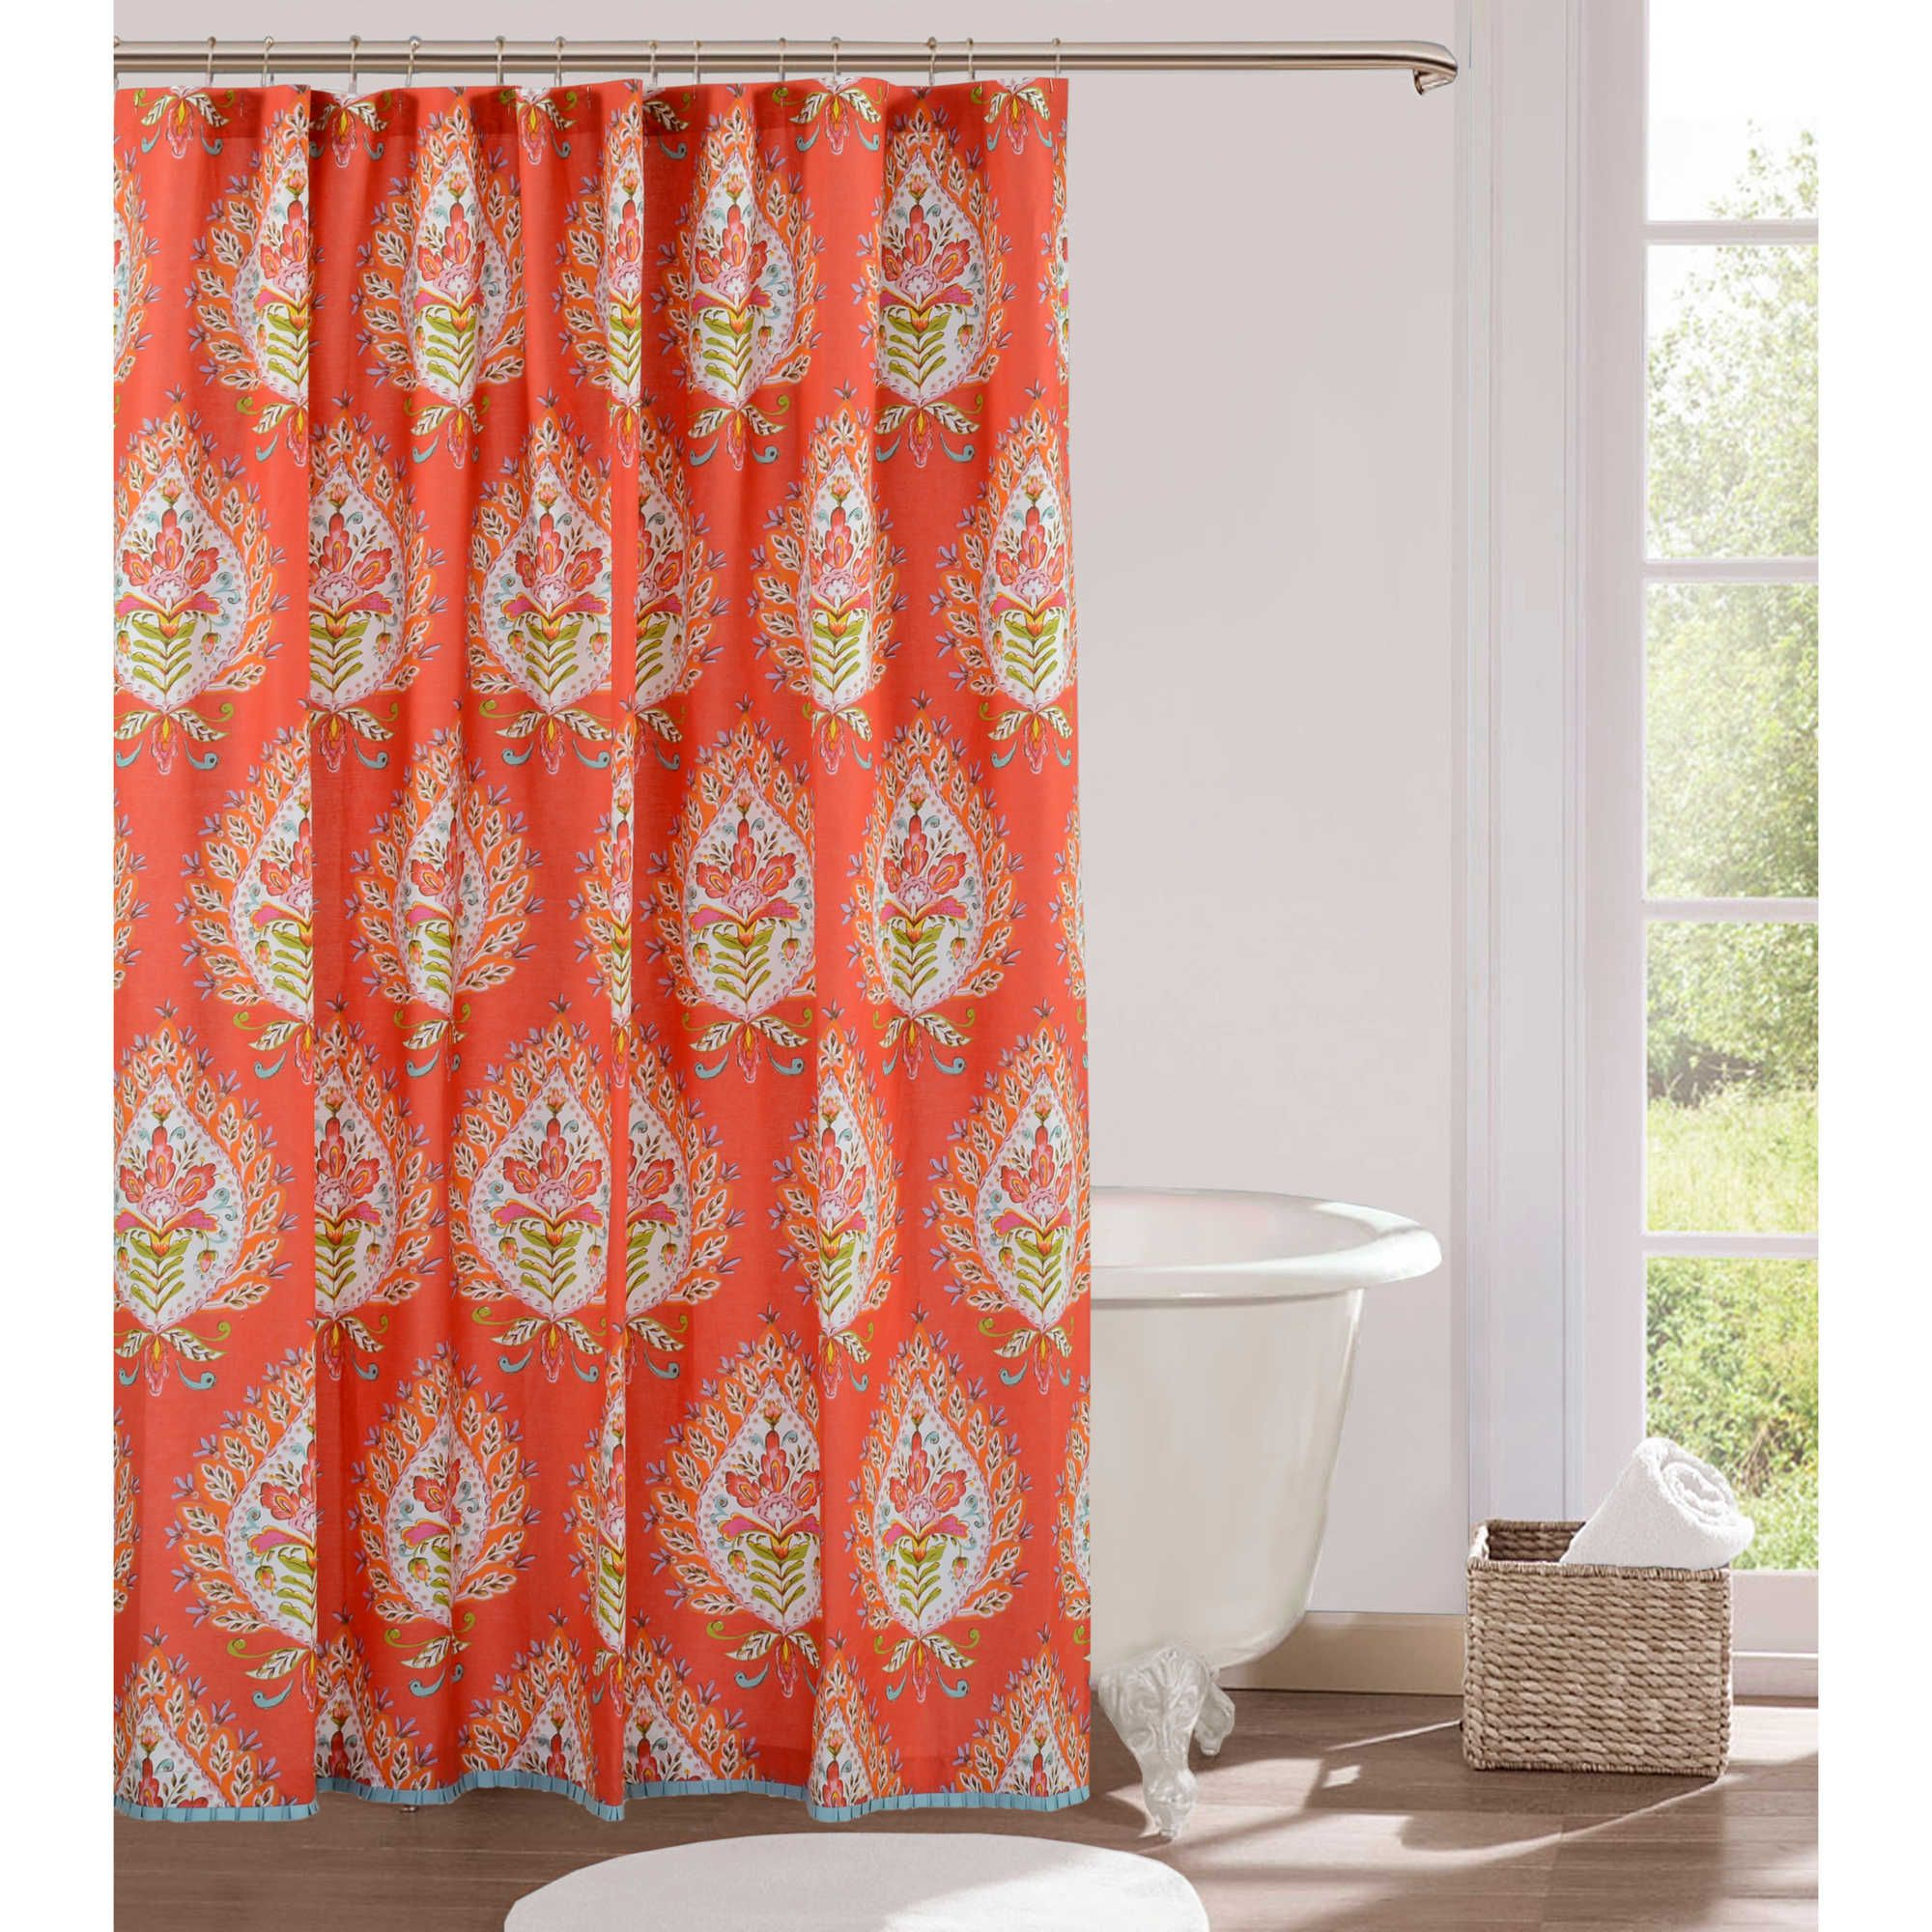 Bed bath and beyond window curtains  kalani fabric shower curtain  upstairs bathrooms flats and house